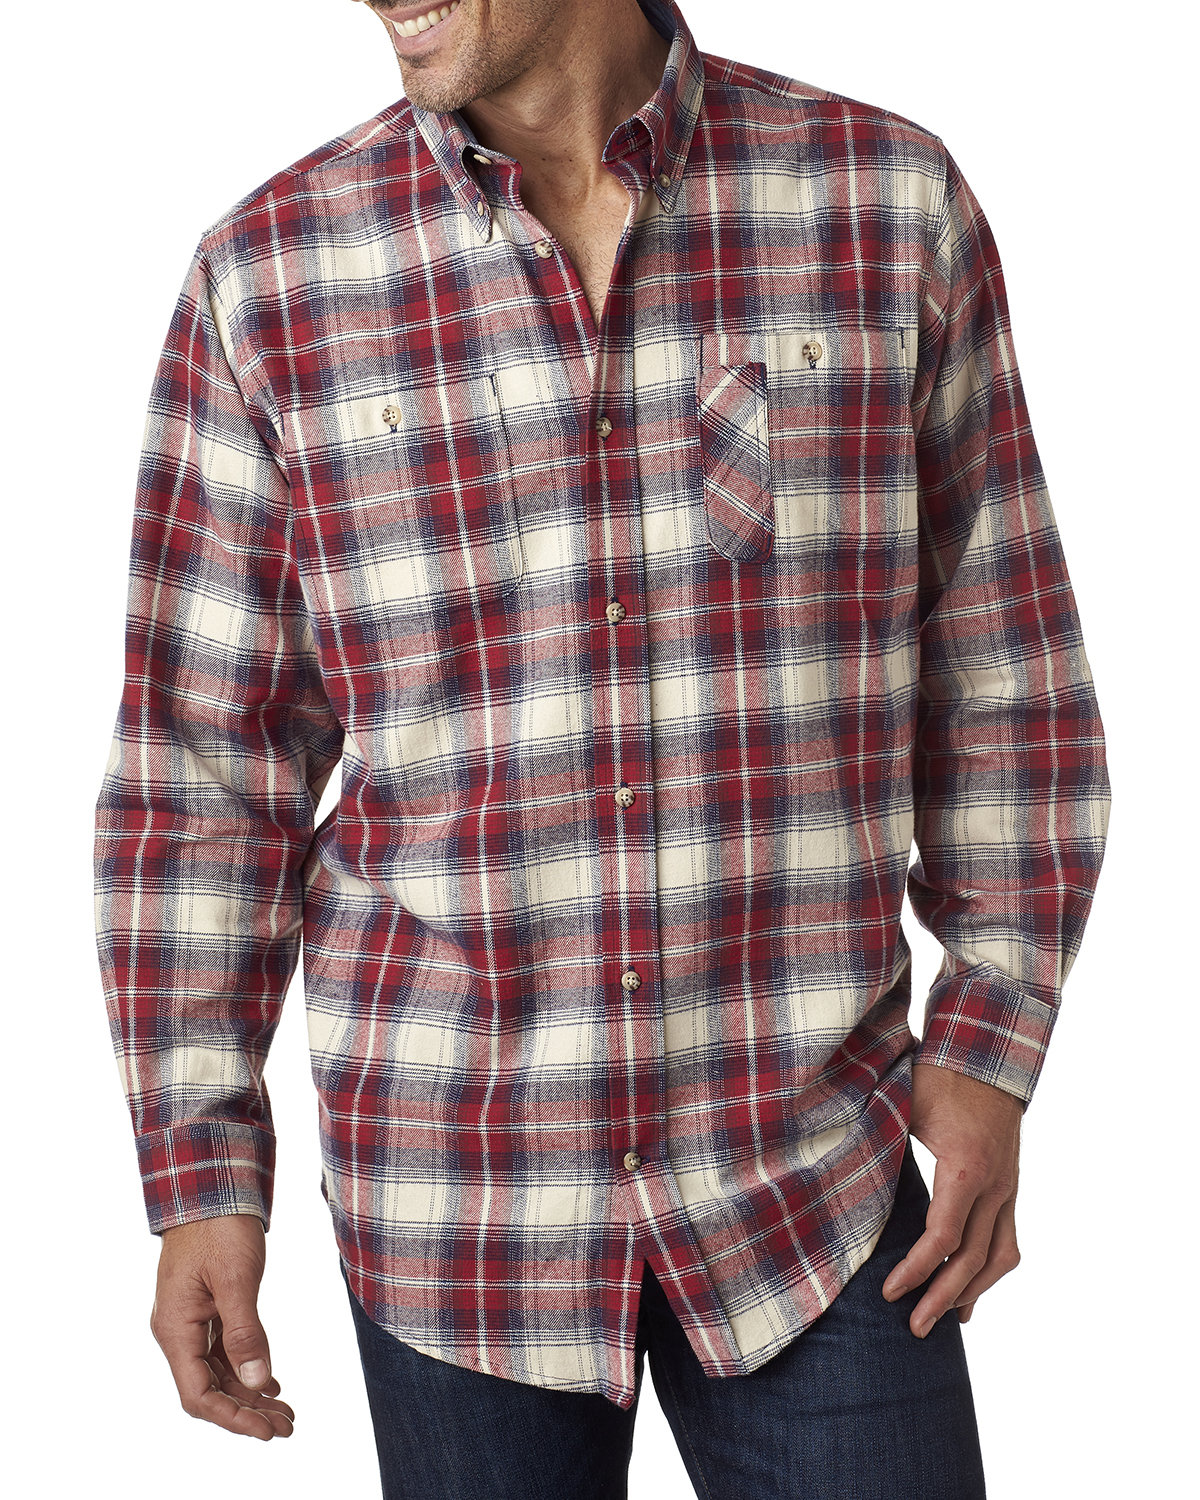 Backpacker Men's Tall Yarn-Dyed Flannel Shirt INDEPENDENT